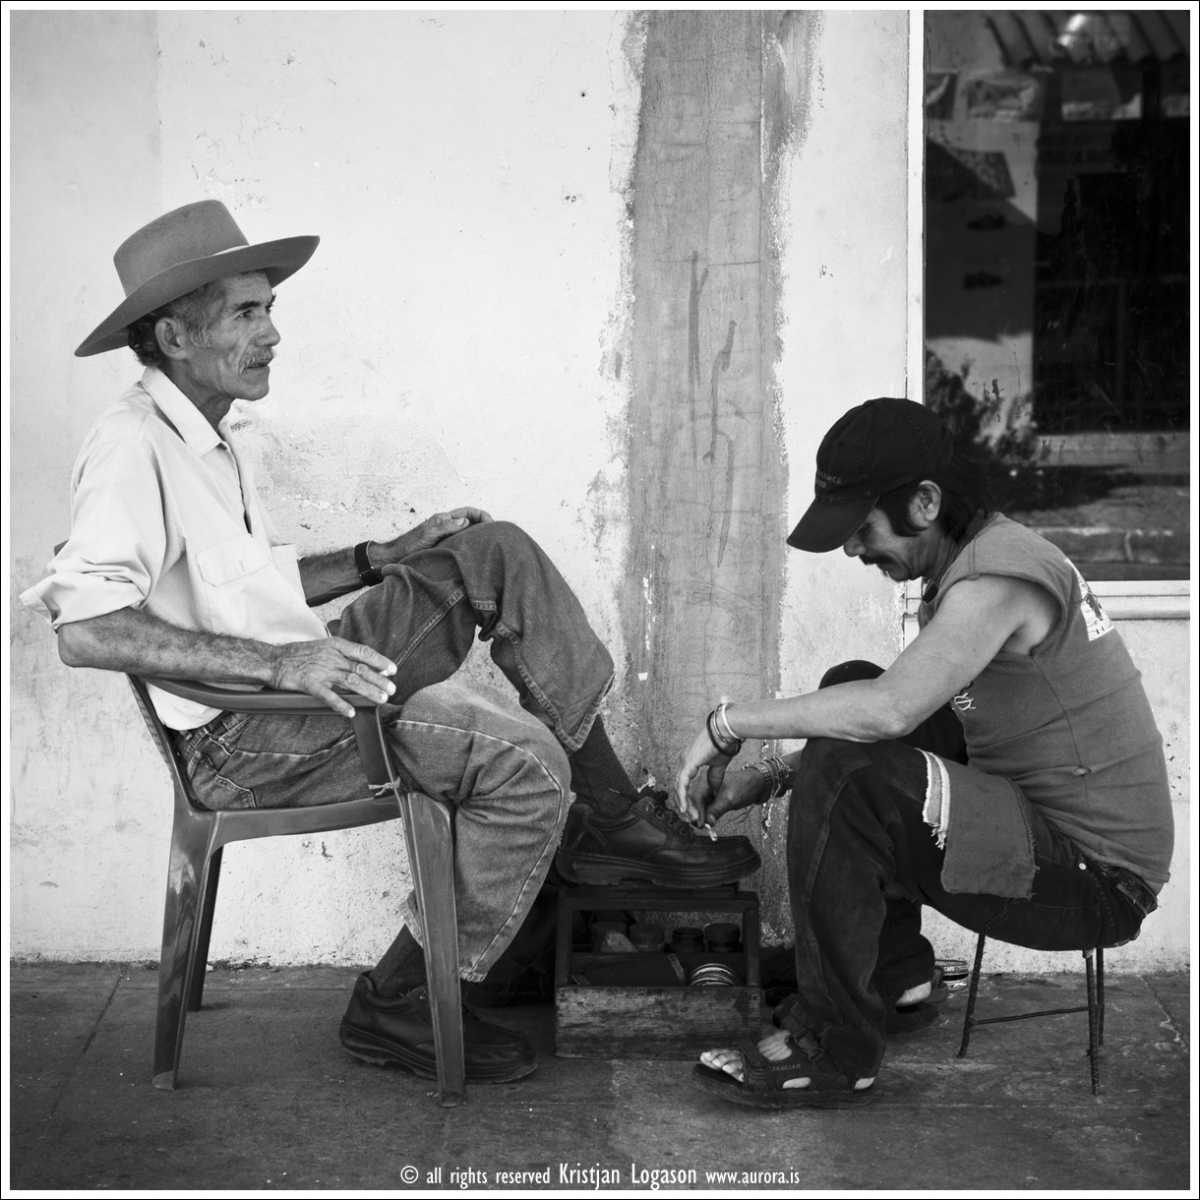 Elderly man in Suchitoto, El salvador, getting a shoe shine